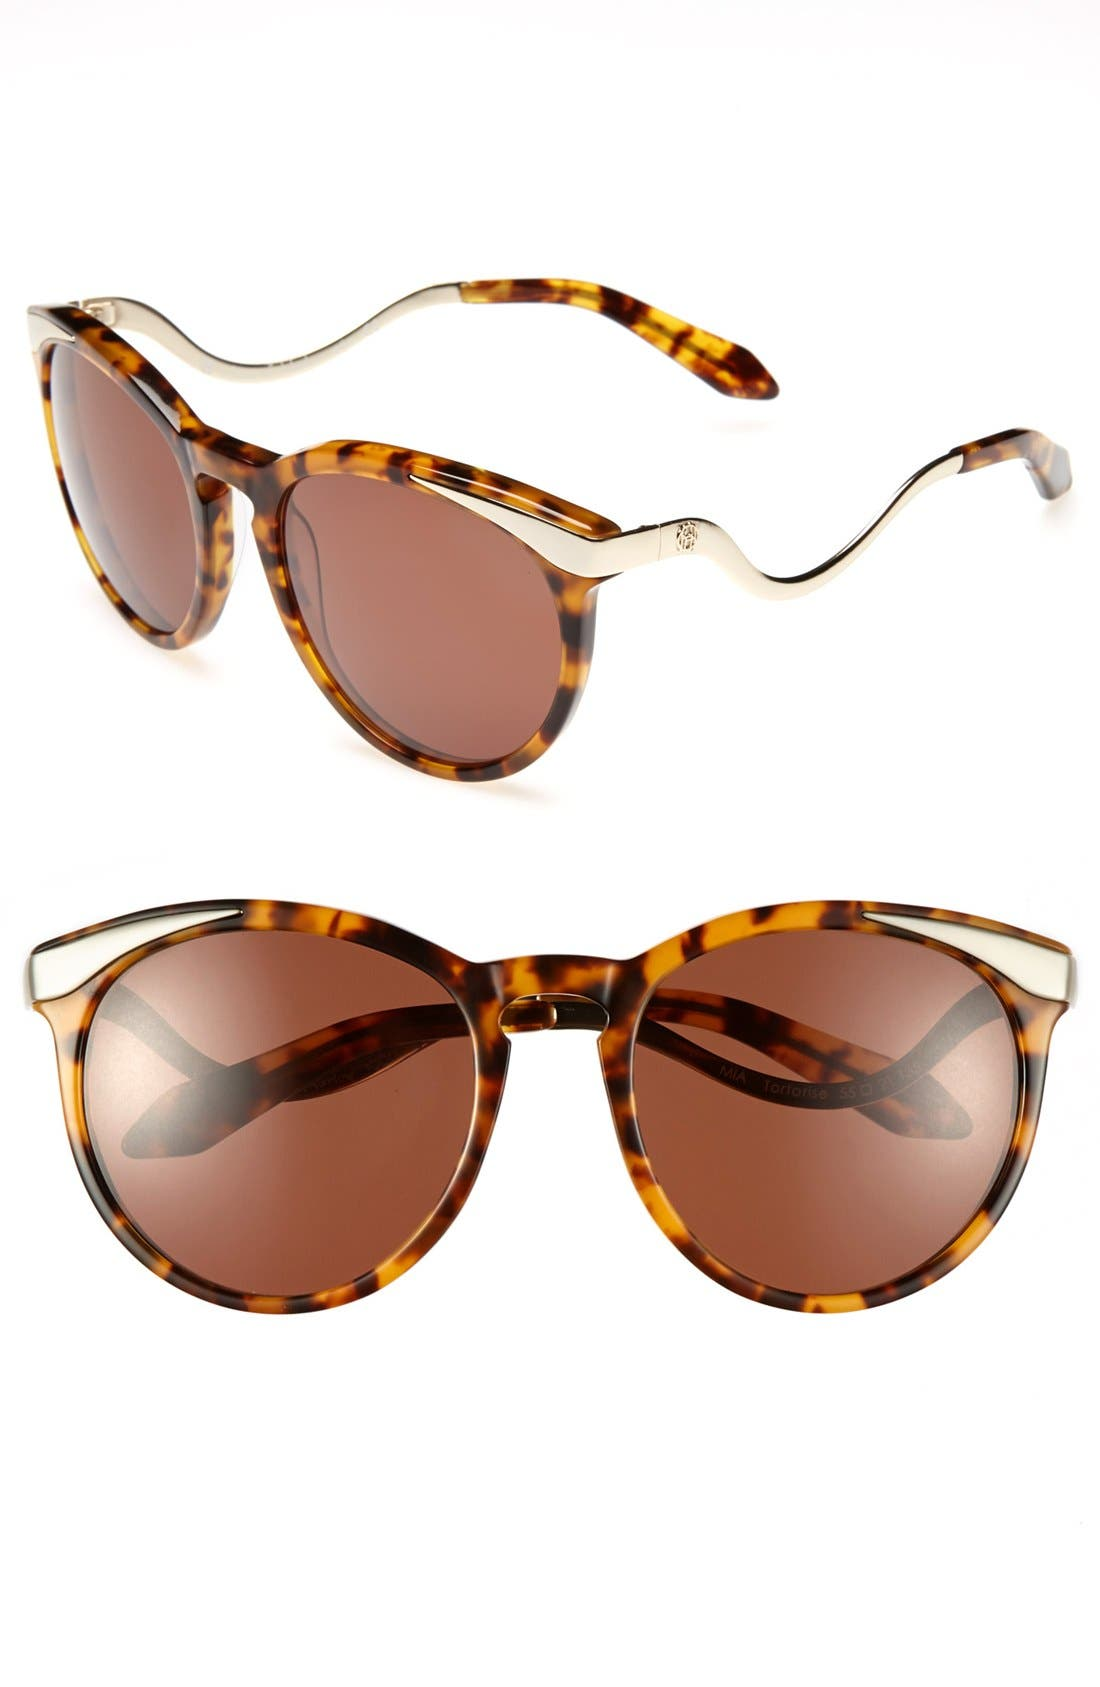 Alternate Image 1 Selected - House of Harlow 1960 'Mia Hoh' 55mm Sunglasses